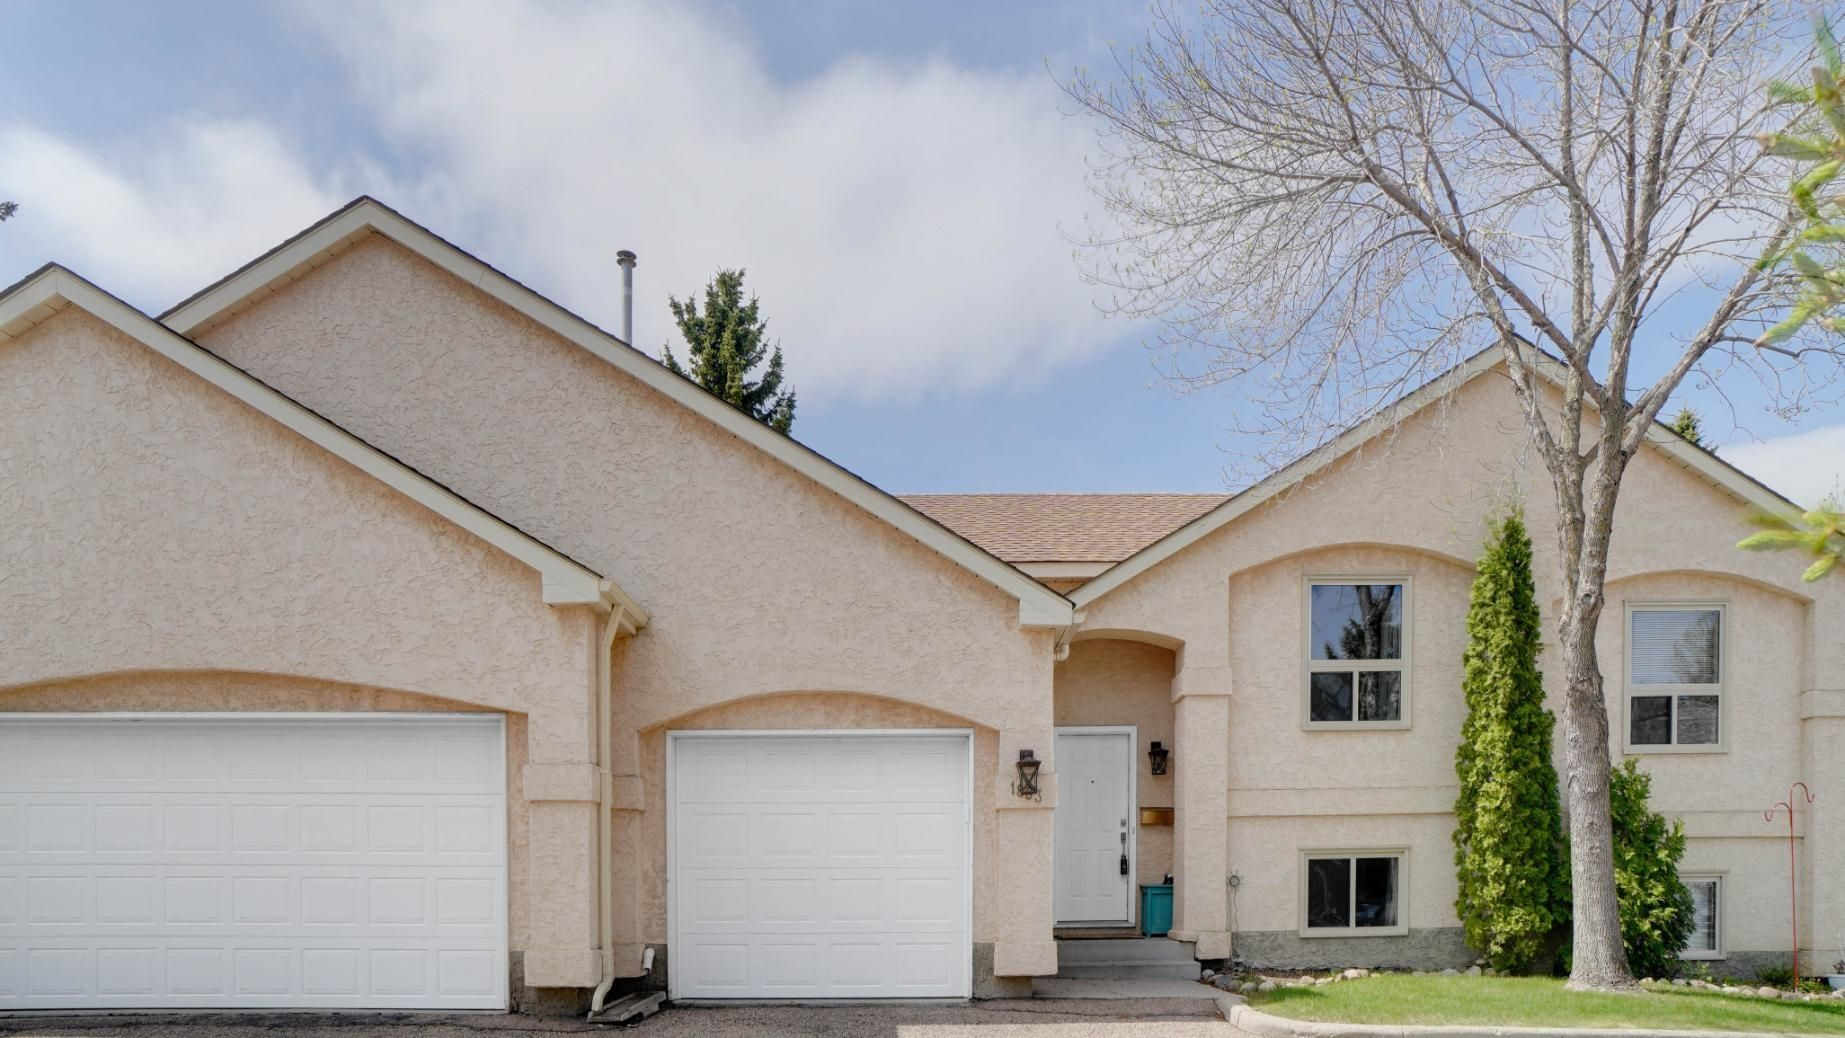 Main Photo: 1883 MILL WOODS Road in Edmonton: Zone 29 Townhouse for sale : MLS®# E4260538